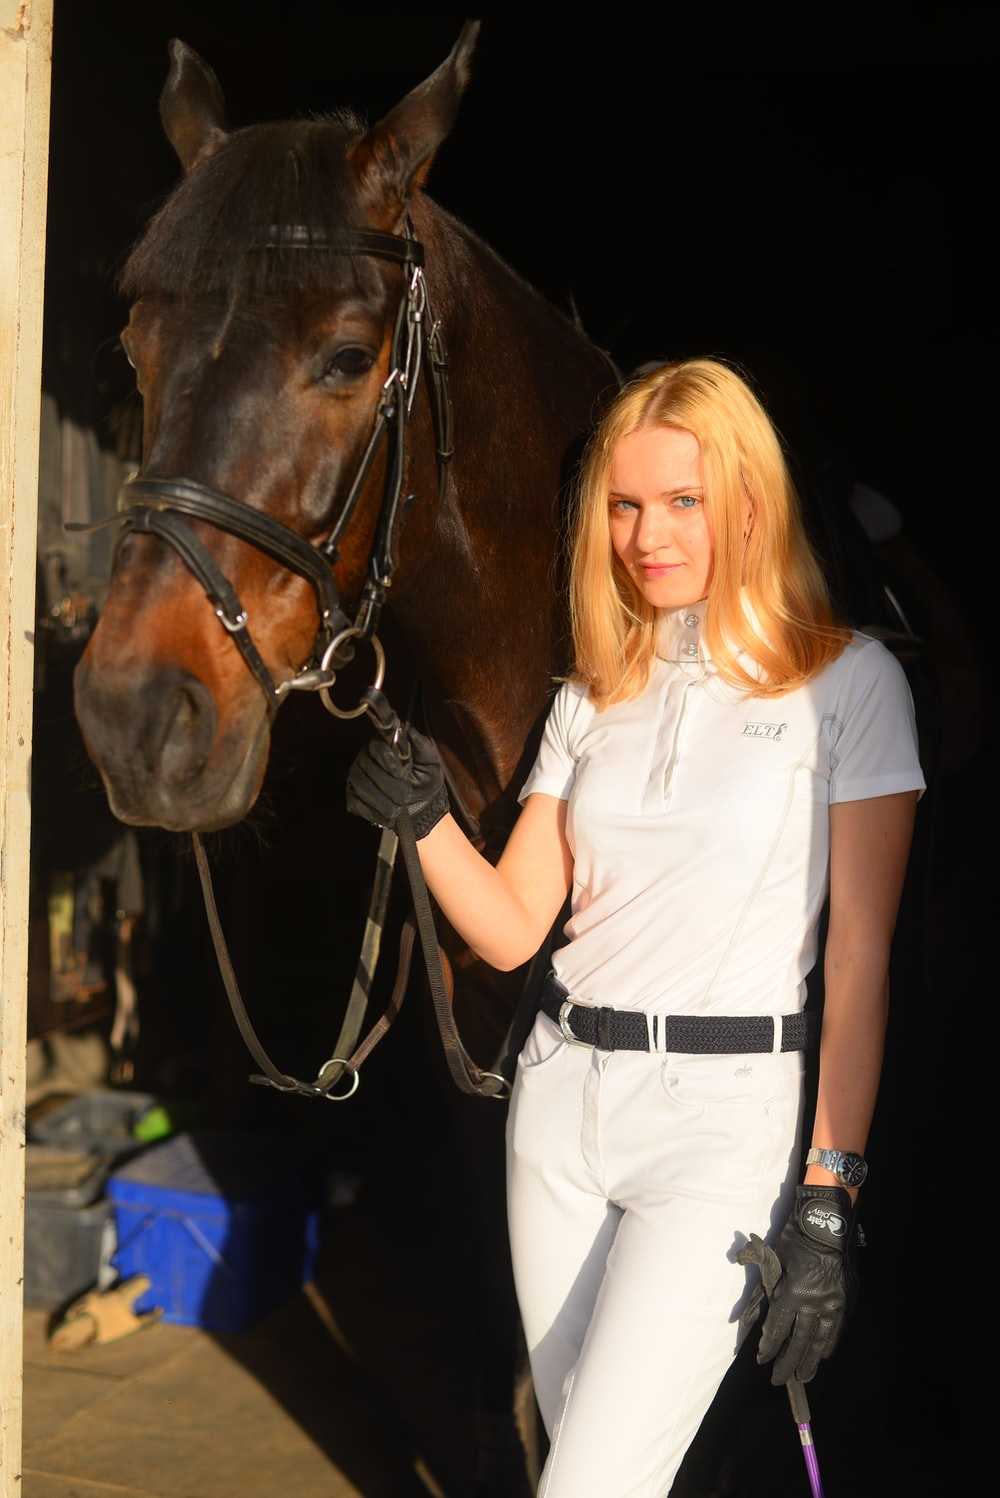 woman in white top standing beside brown horse